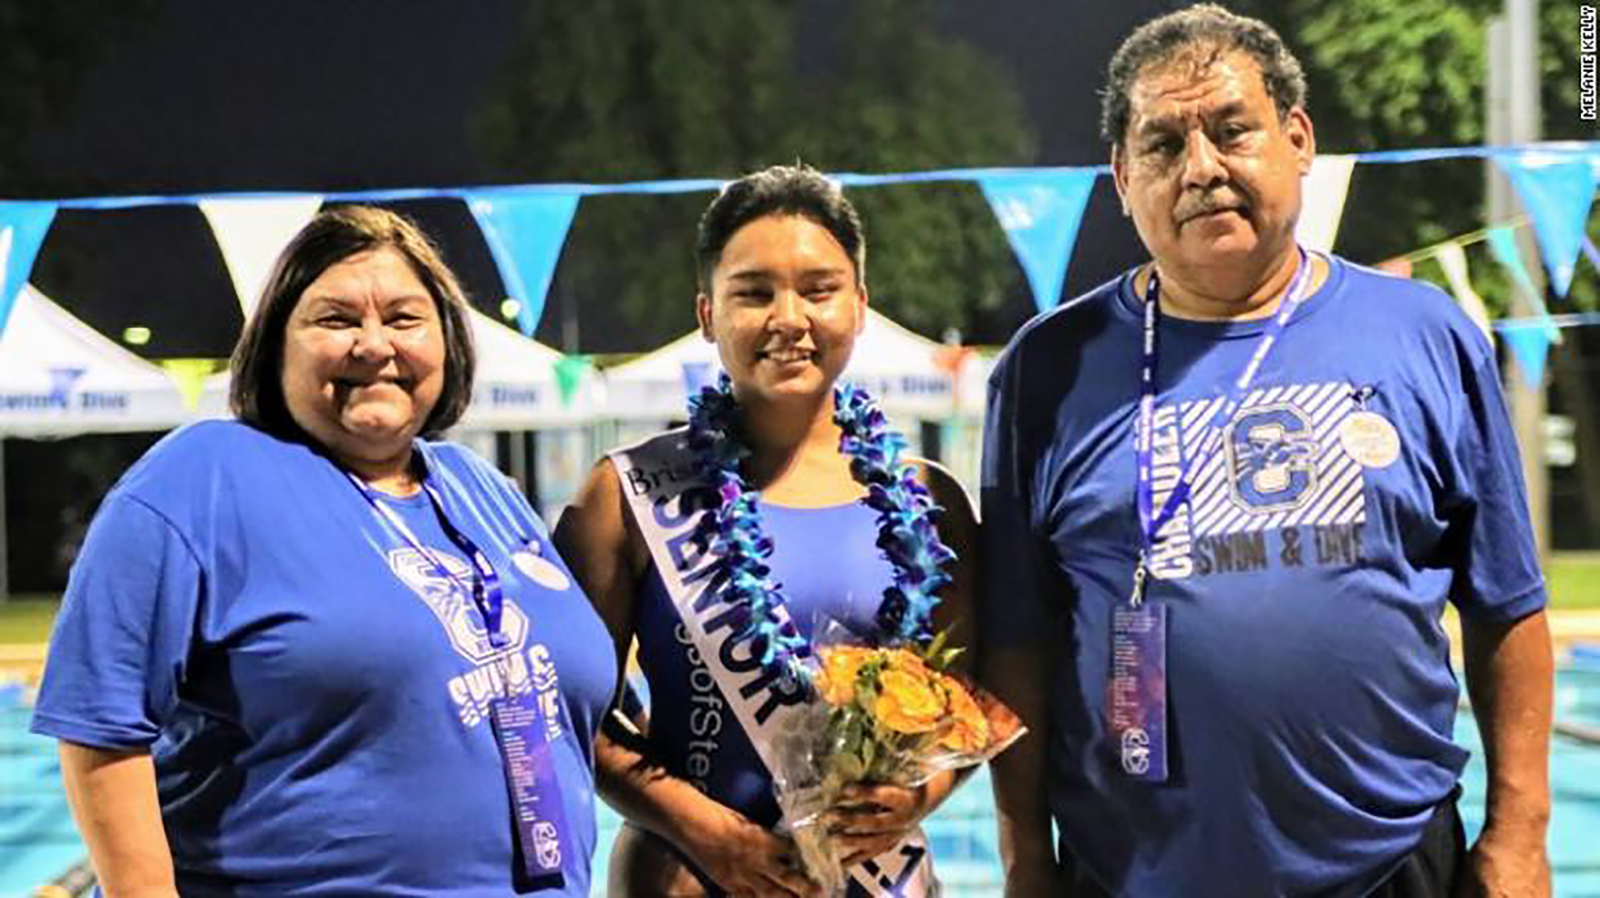 Lisa and Tony Vasquez with their daughter, Brisa, center. Lisa and Tony died last week from Covid-19.